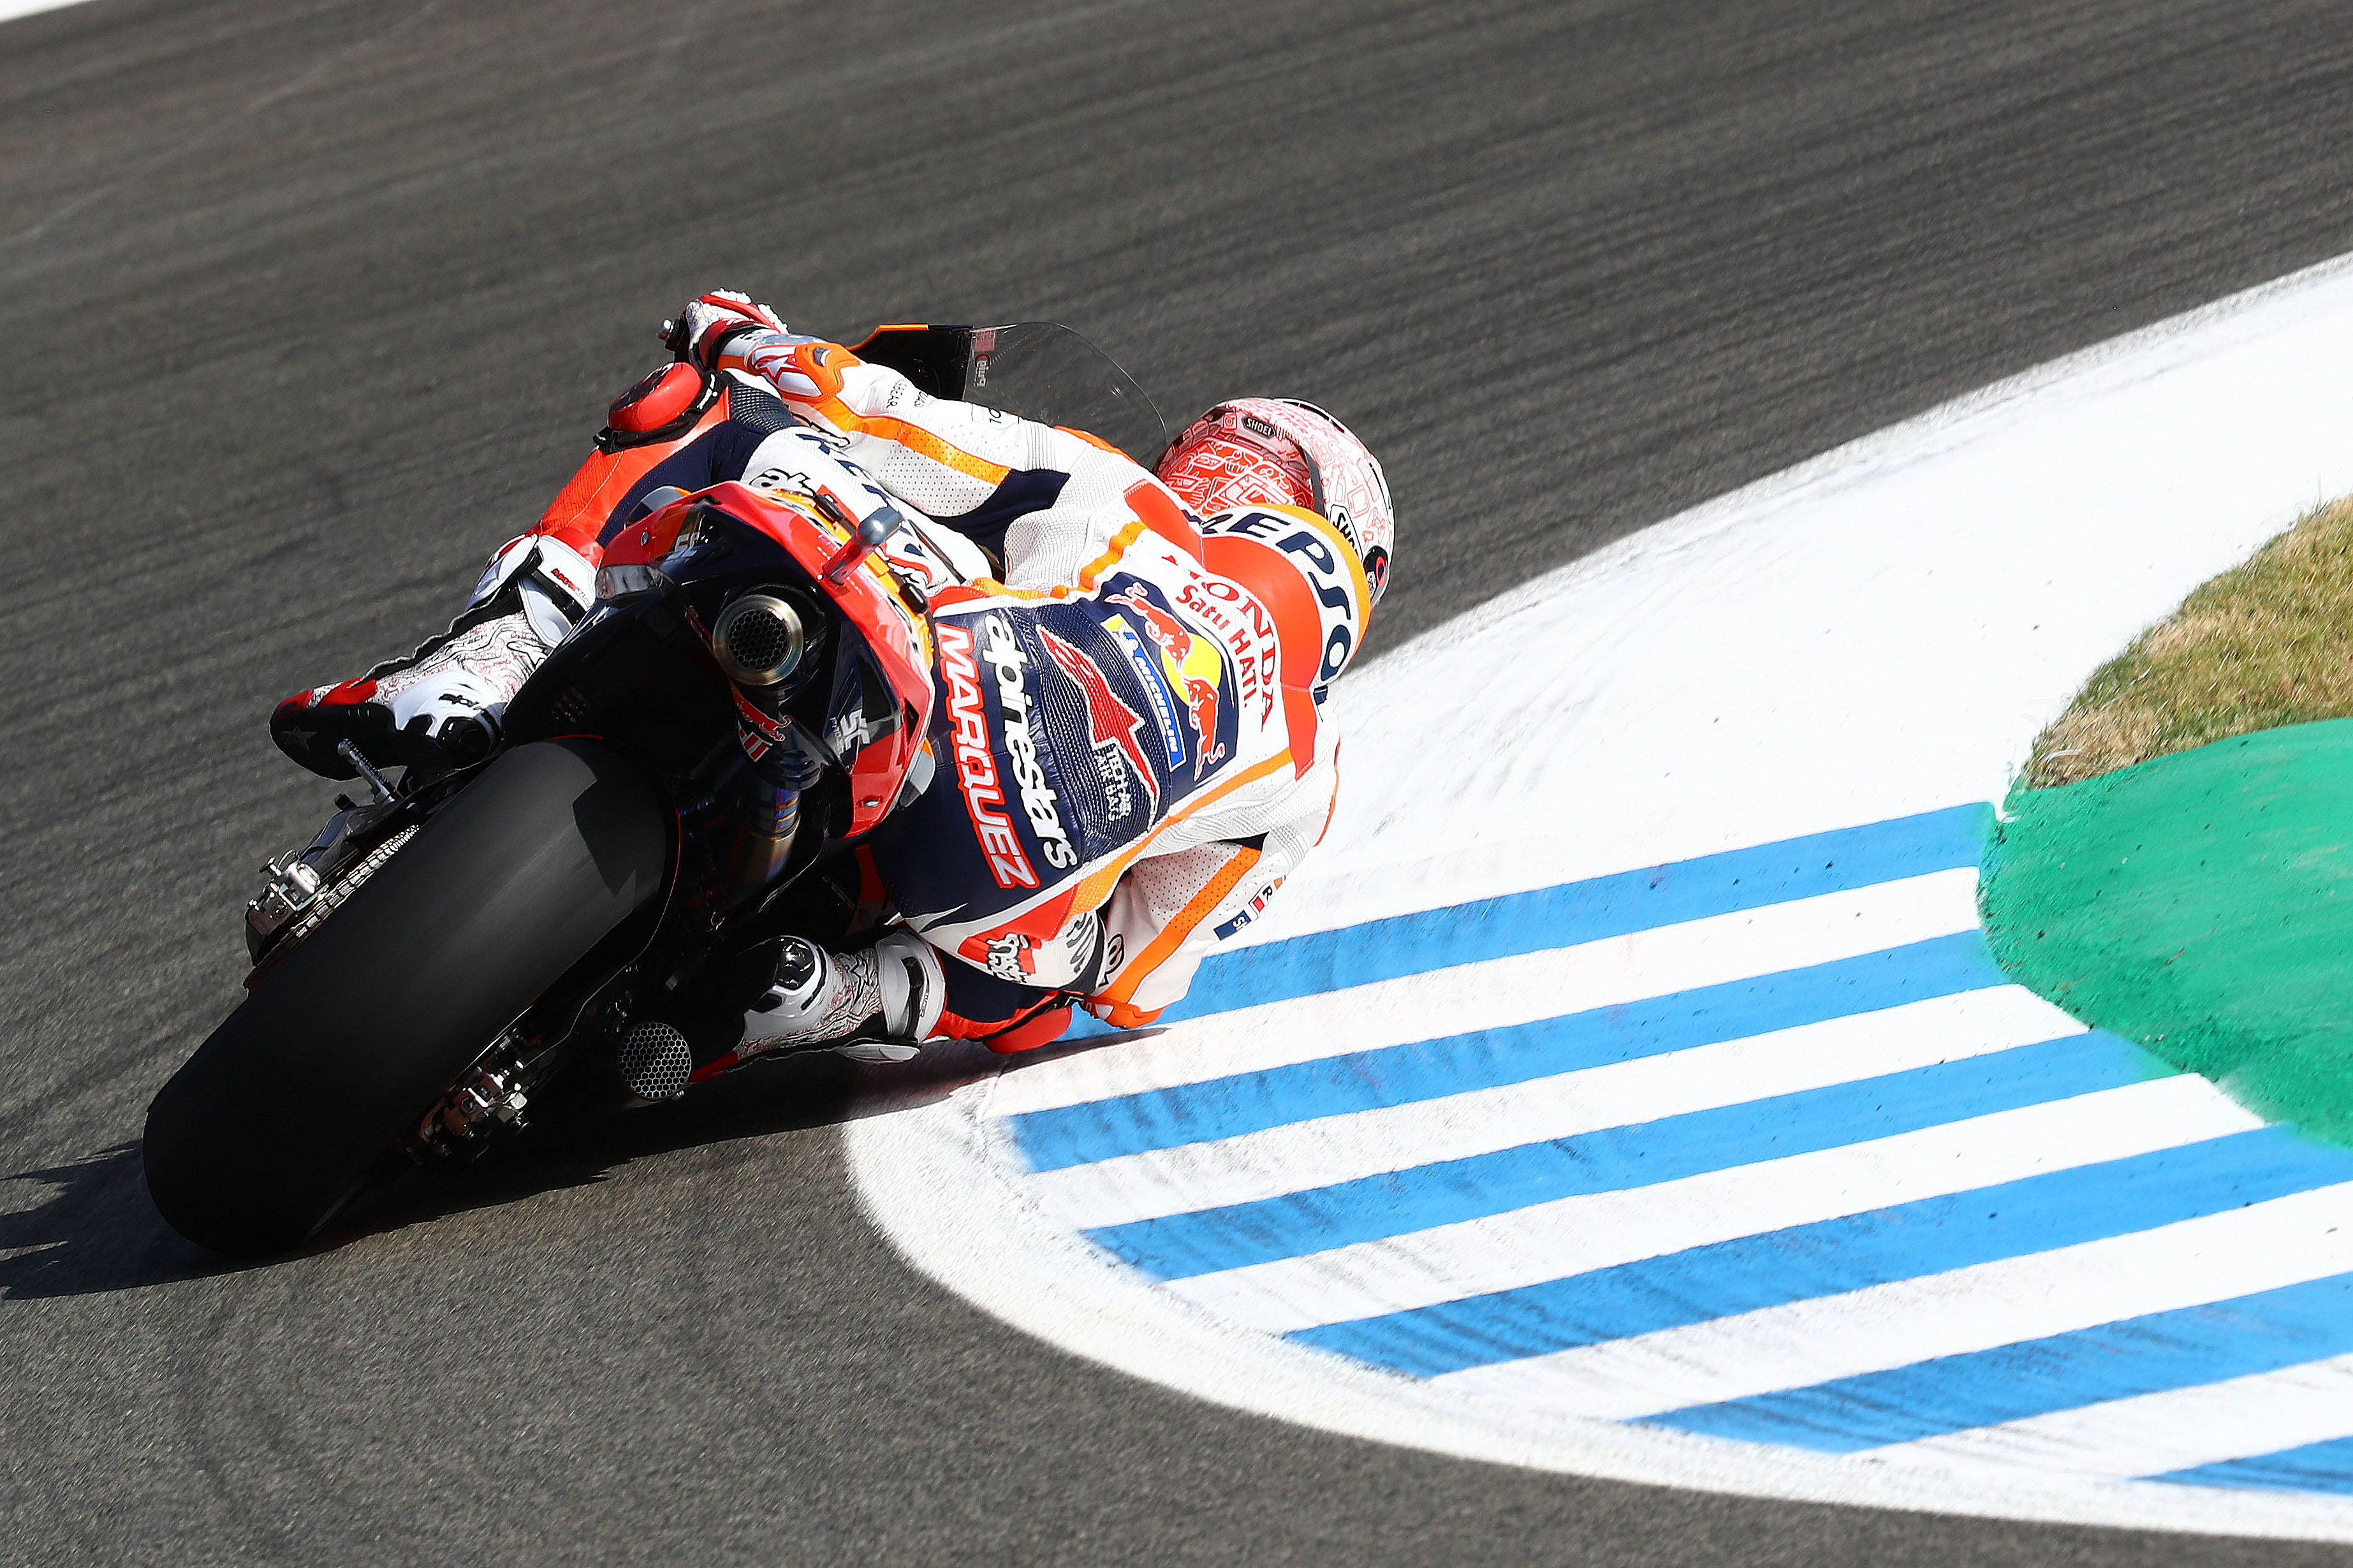 Honda Riders Admit They Re Effectively Using 2019 Bike The Race